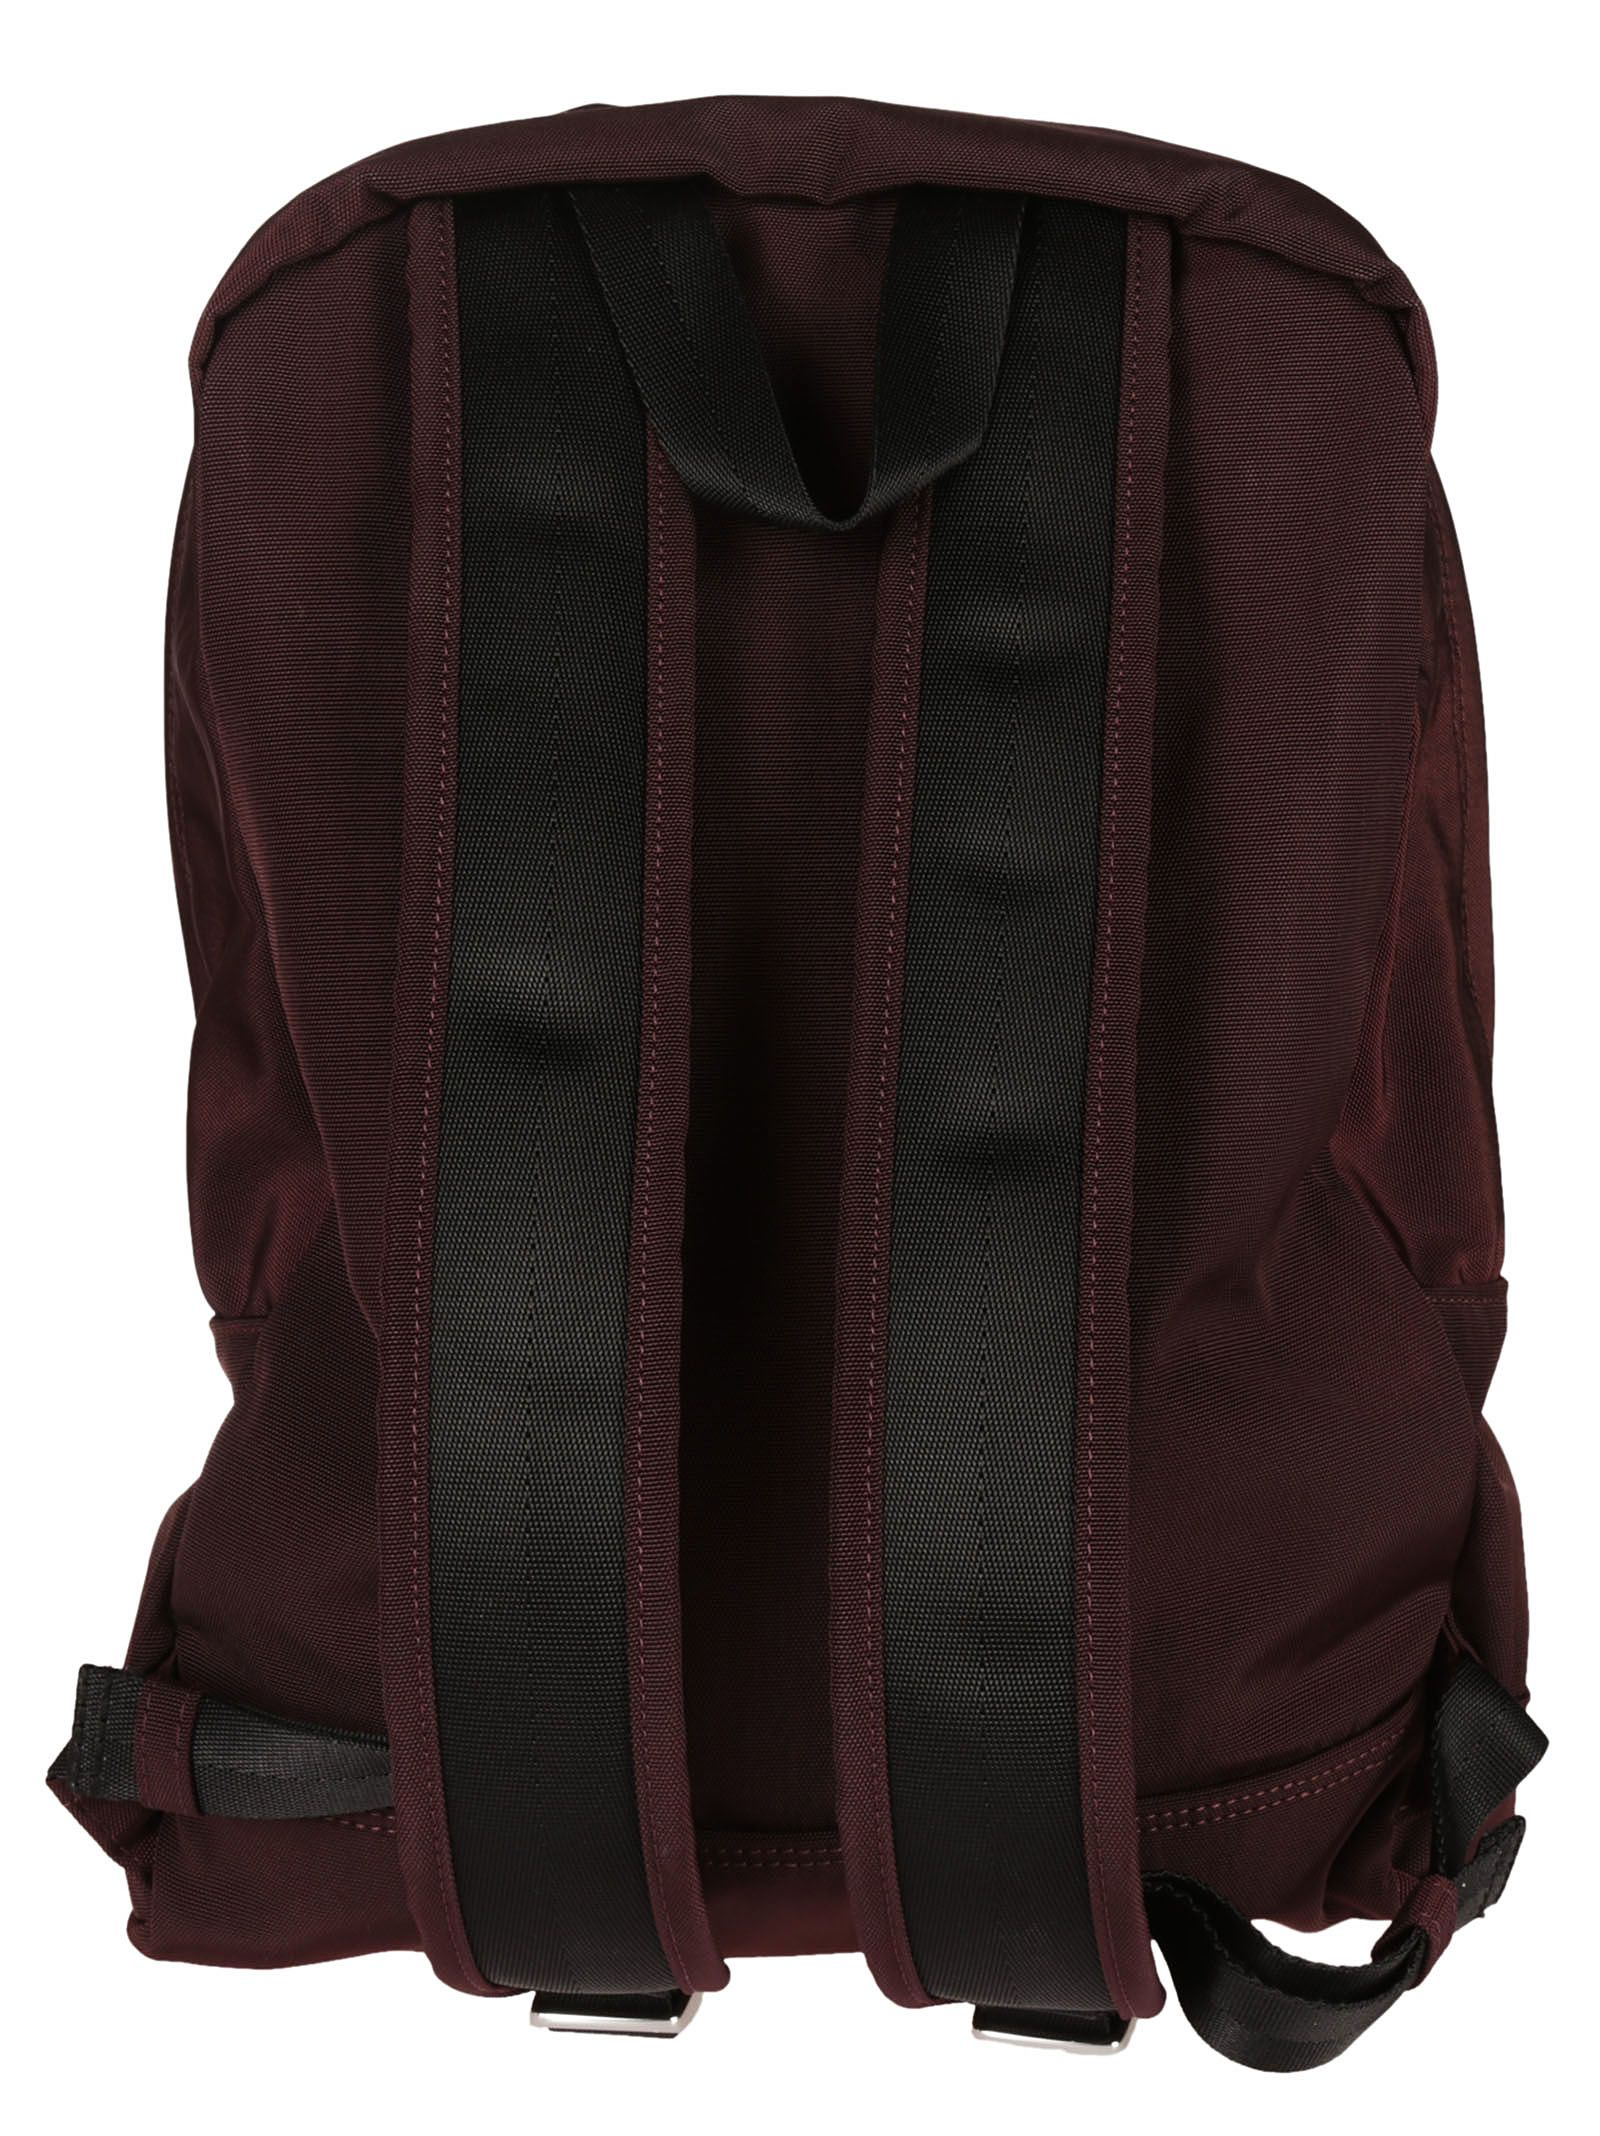 Kenzo Kenzo Large Tiger Backpack - Bordeaux - 8136670  4a16ac5956bd2